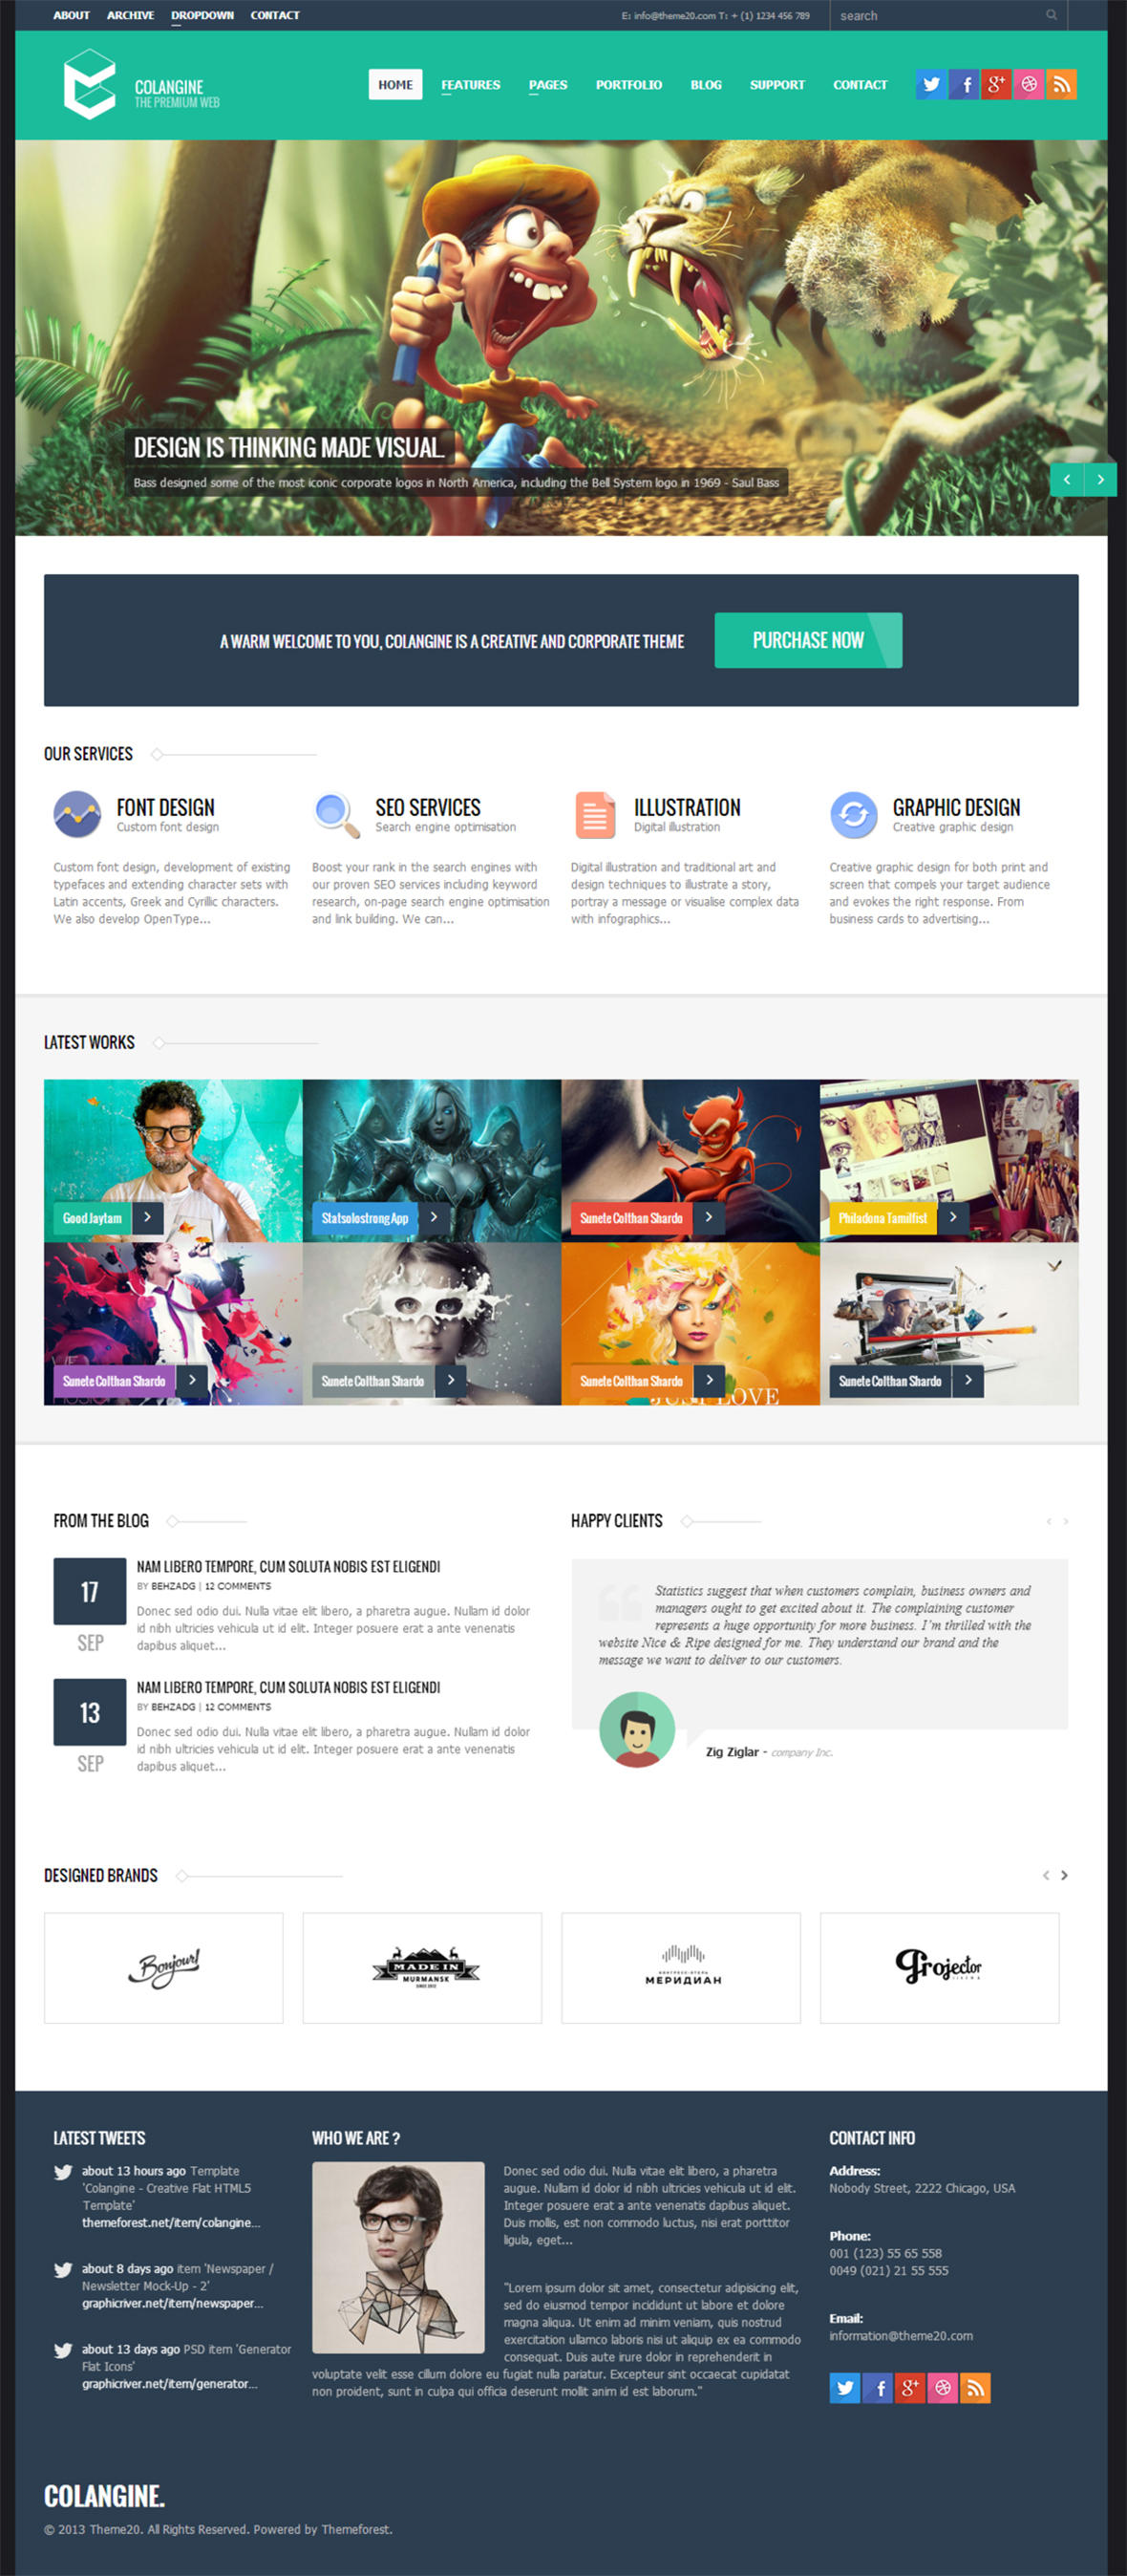 PSD to HTML5 by Codevz - 17326